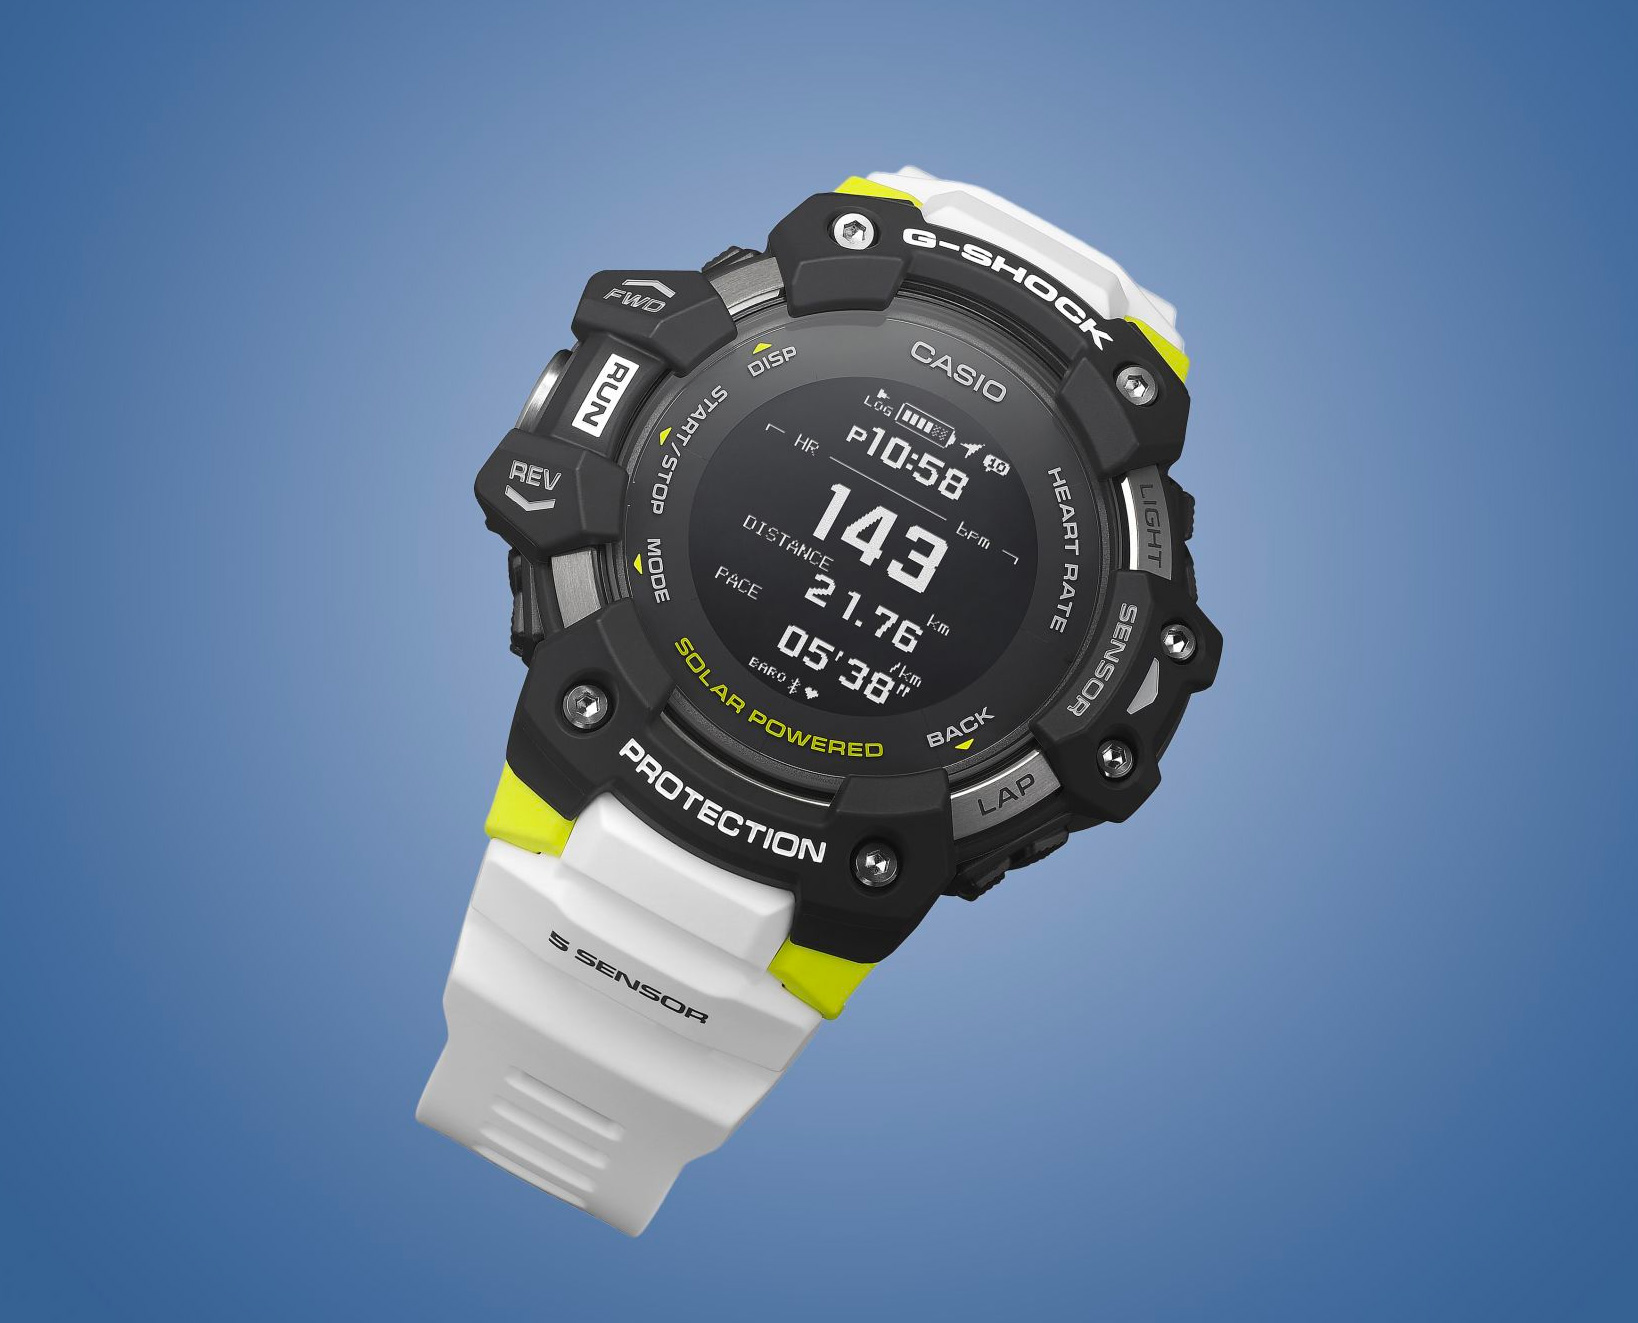 Get GPS, HRM, & More with Casio's G-Shock GBD H1000 at werd.com